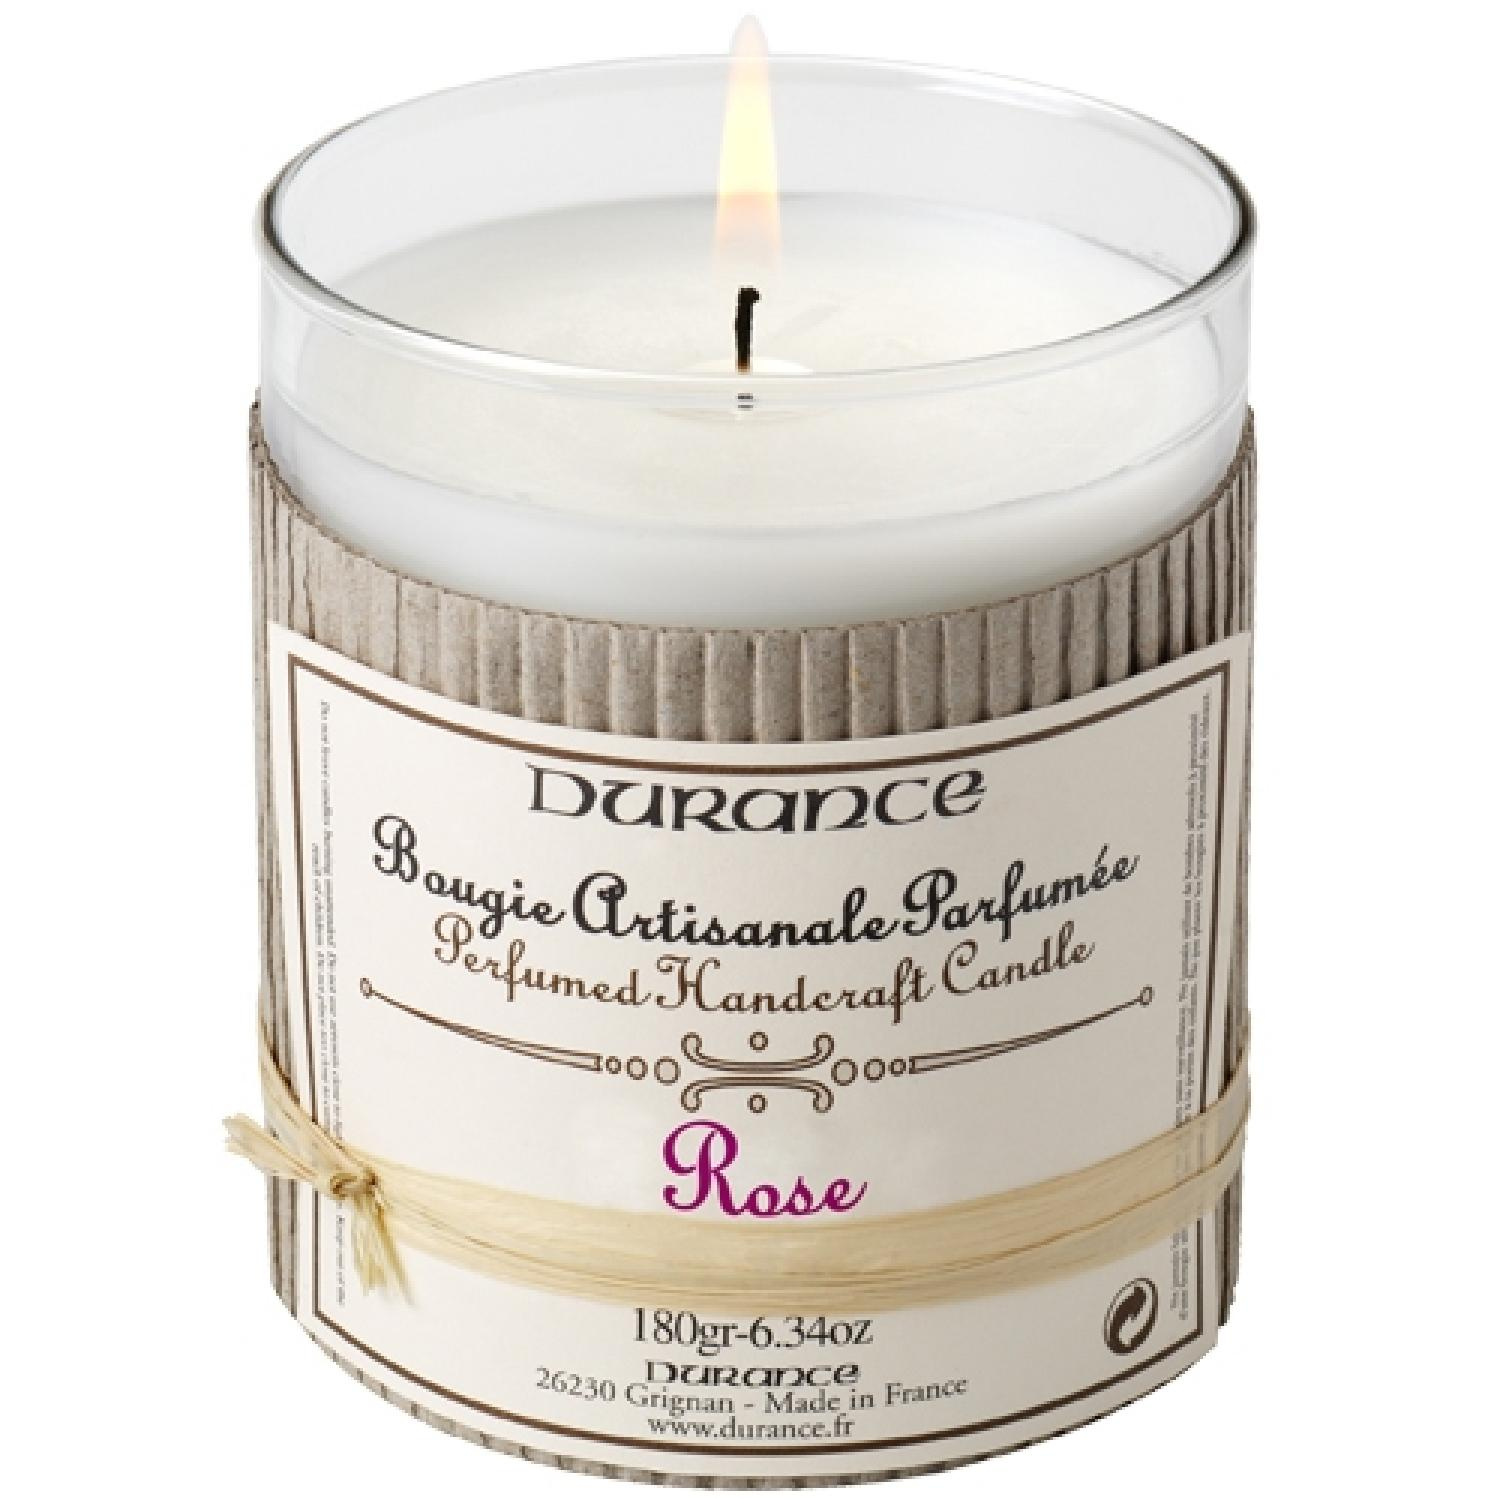 Scented Candle - Rose 180gr